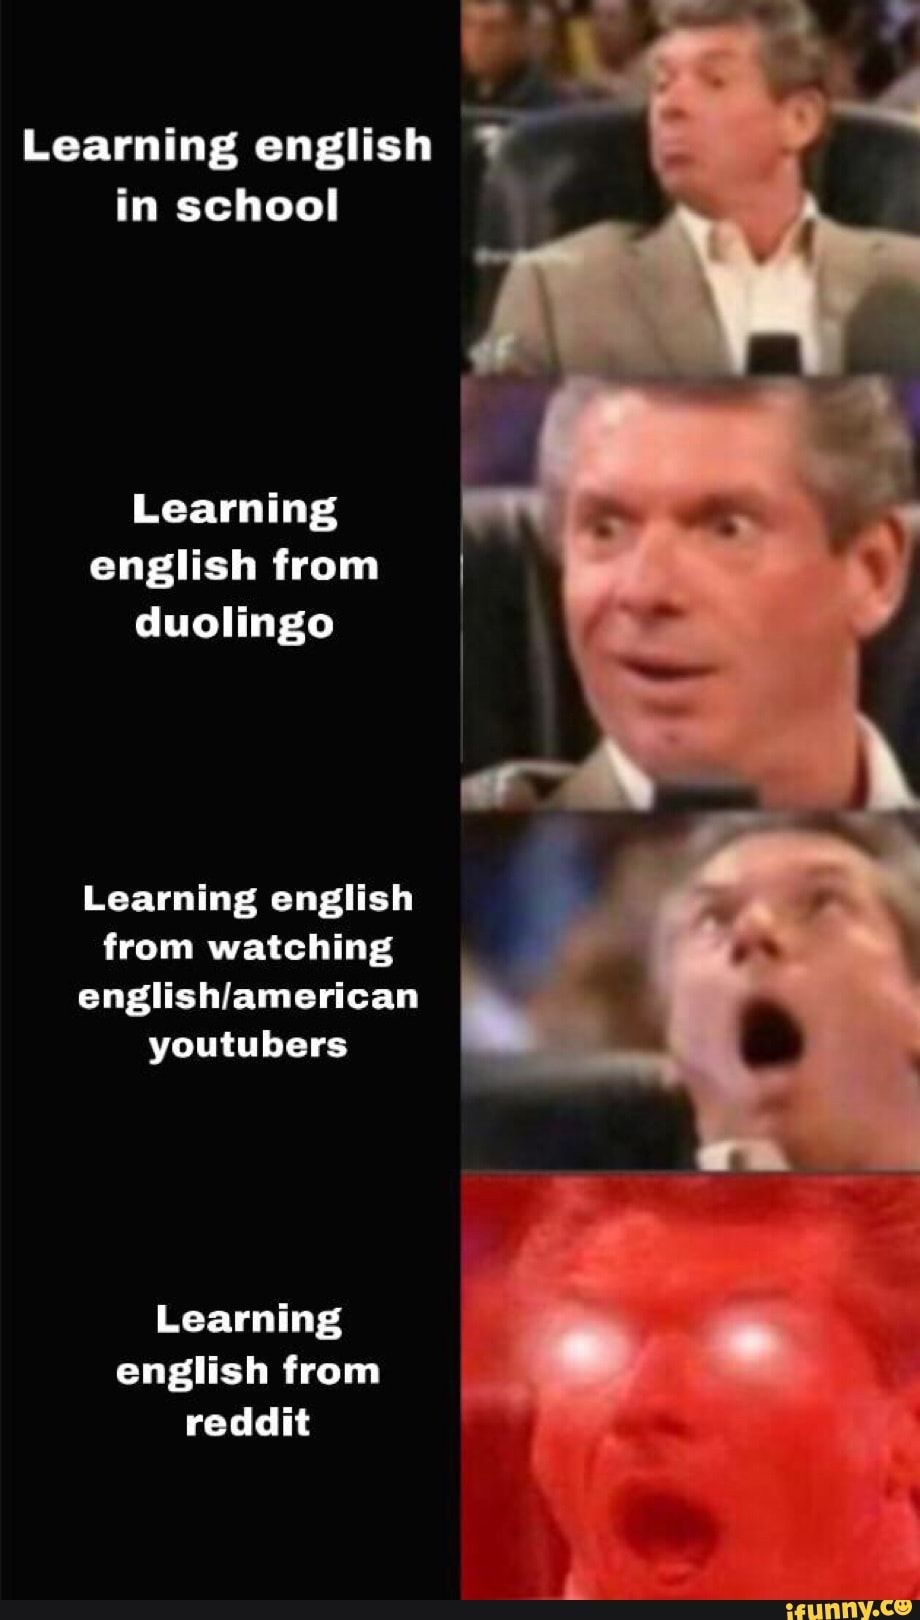 Learning English In School Learning Learning English From Watching Englishlameric??n Youtu Hers Learning Reddit Ifunny Learn English English Memes Memes